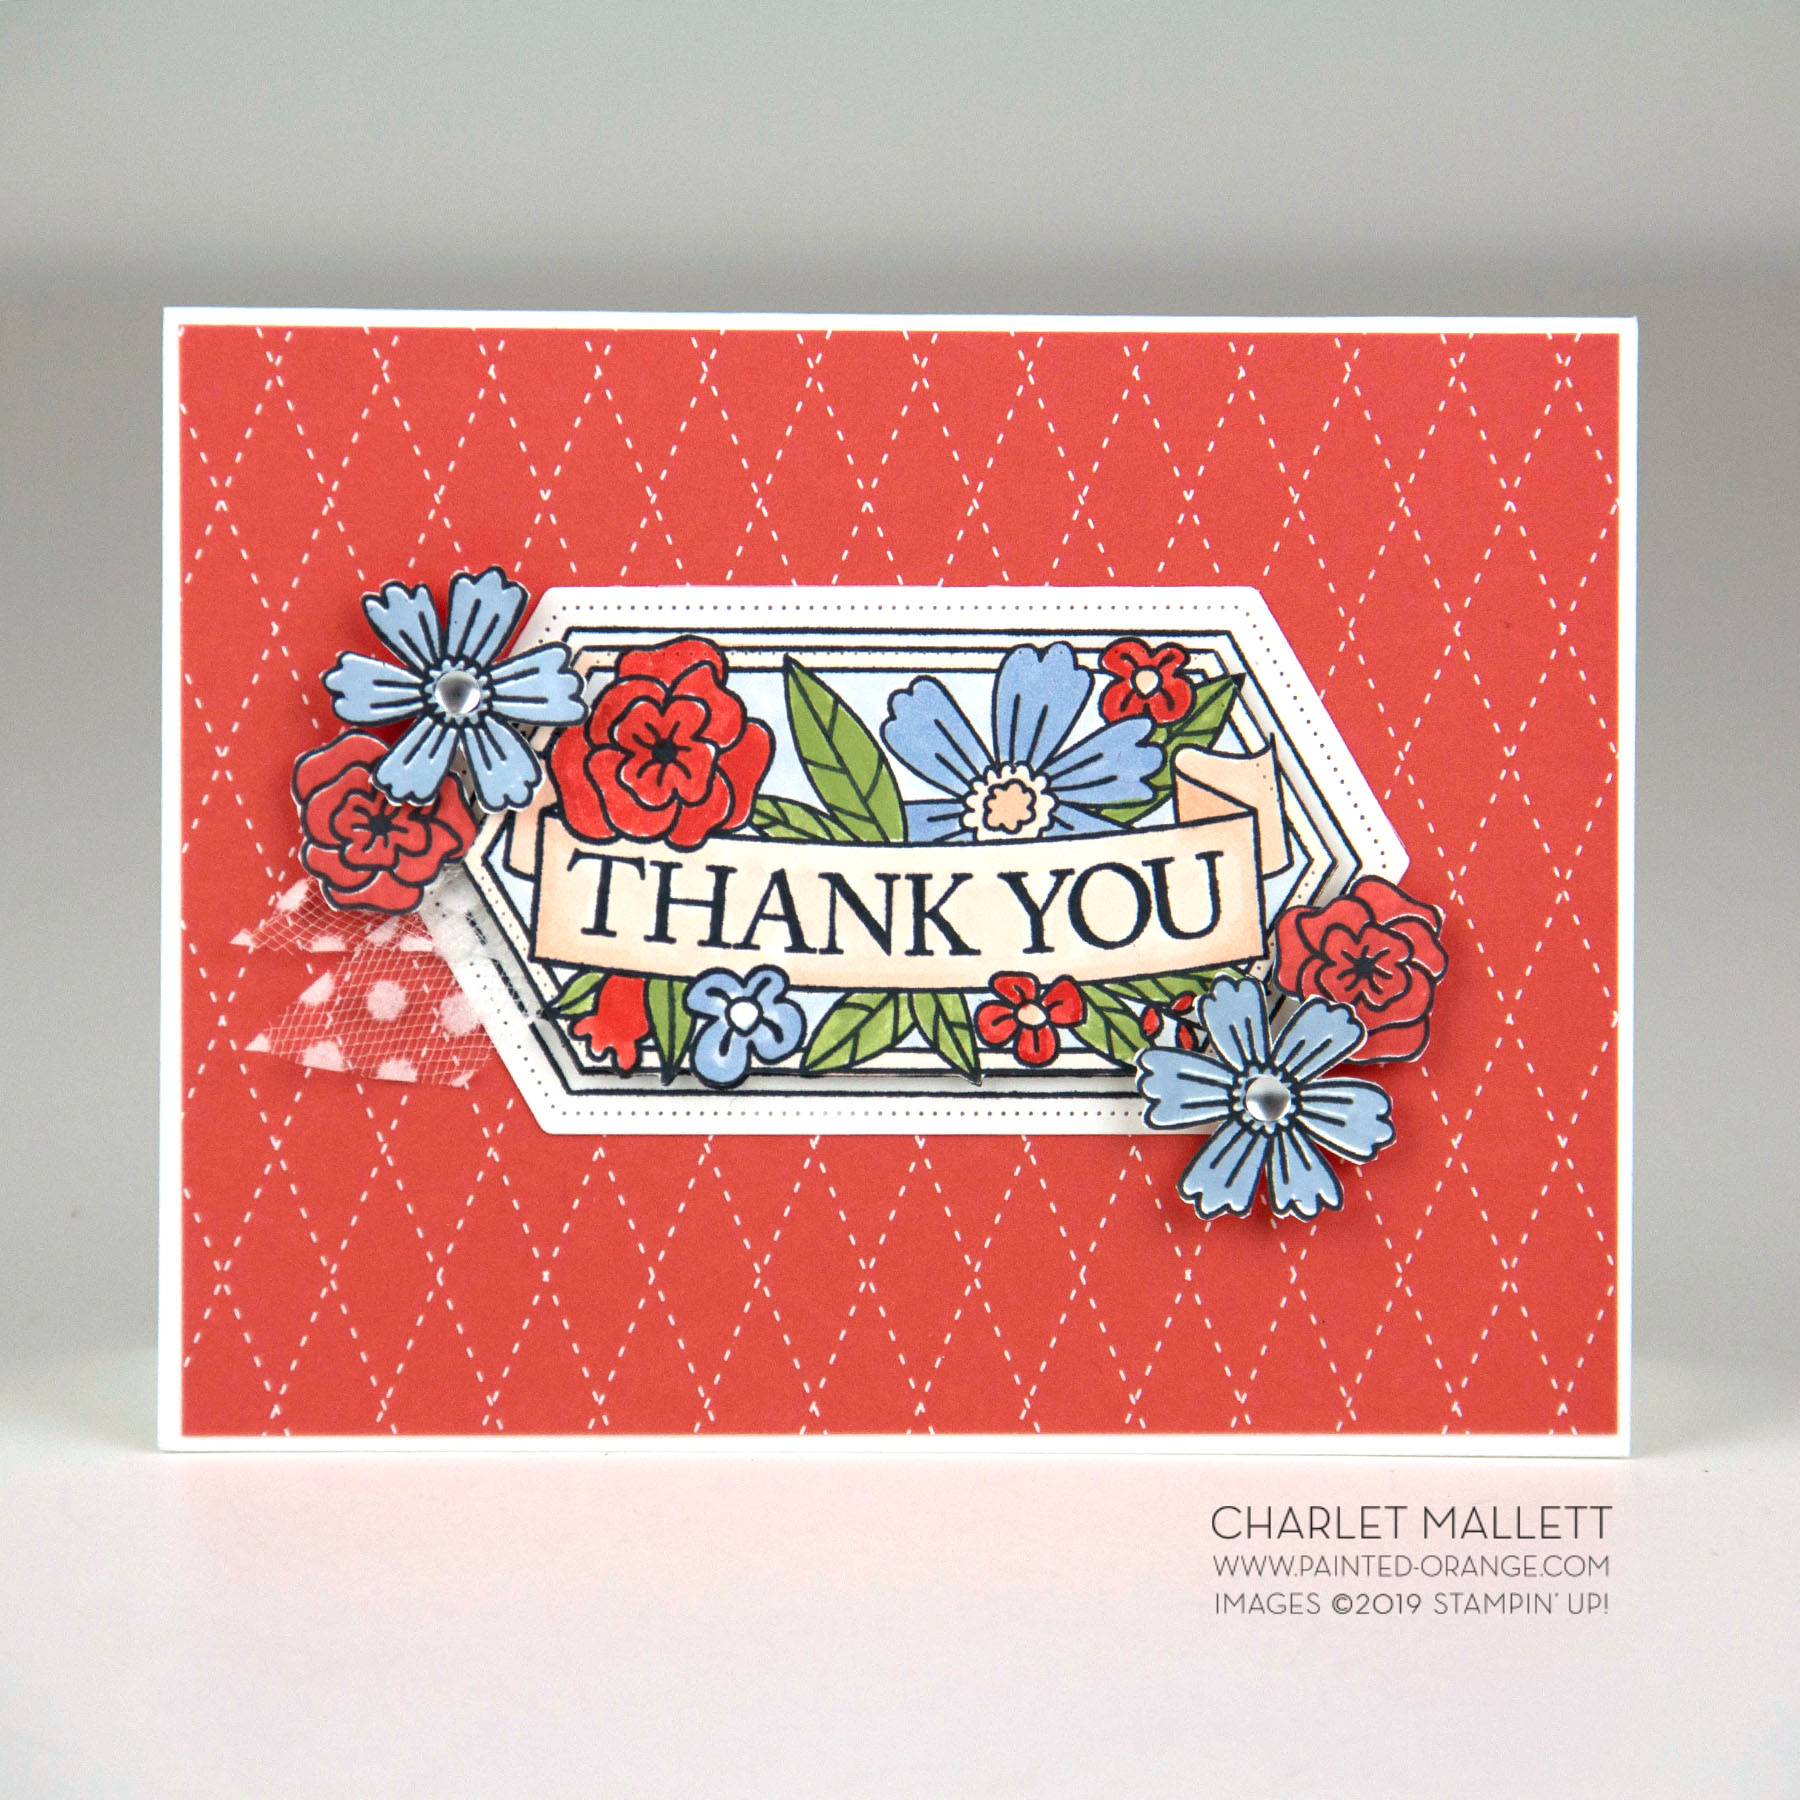 Believe You Can - Thanks Card - Charlet Mallett, Stampin' Up!